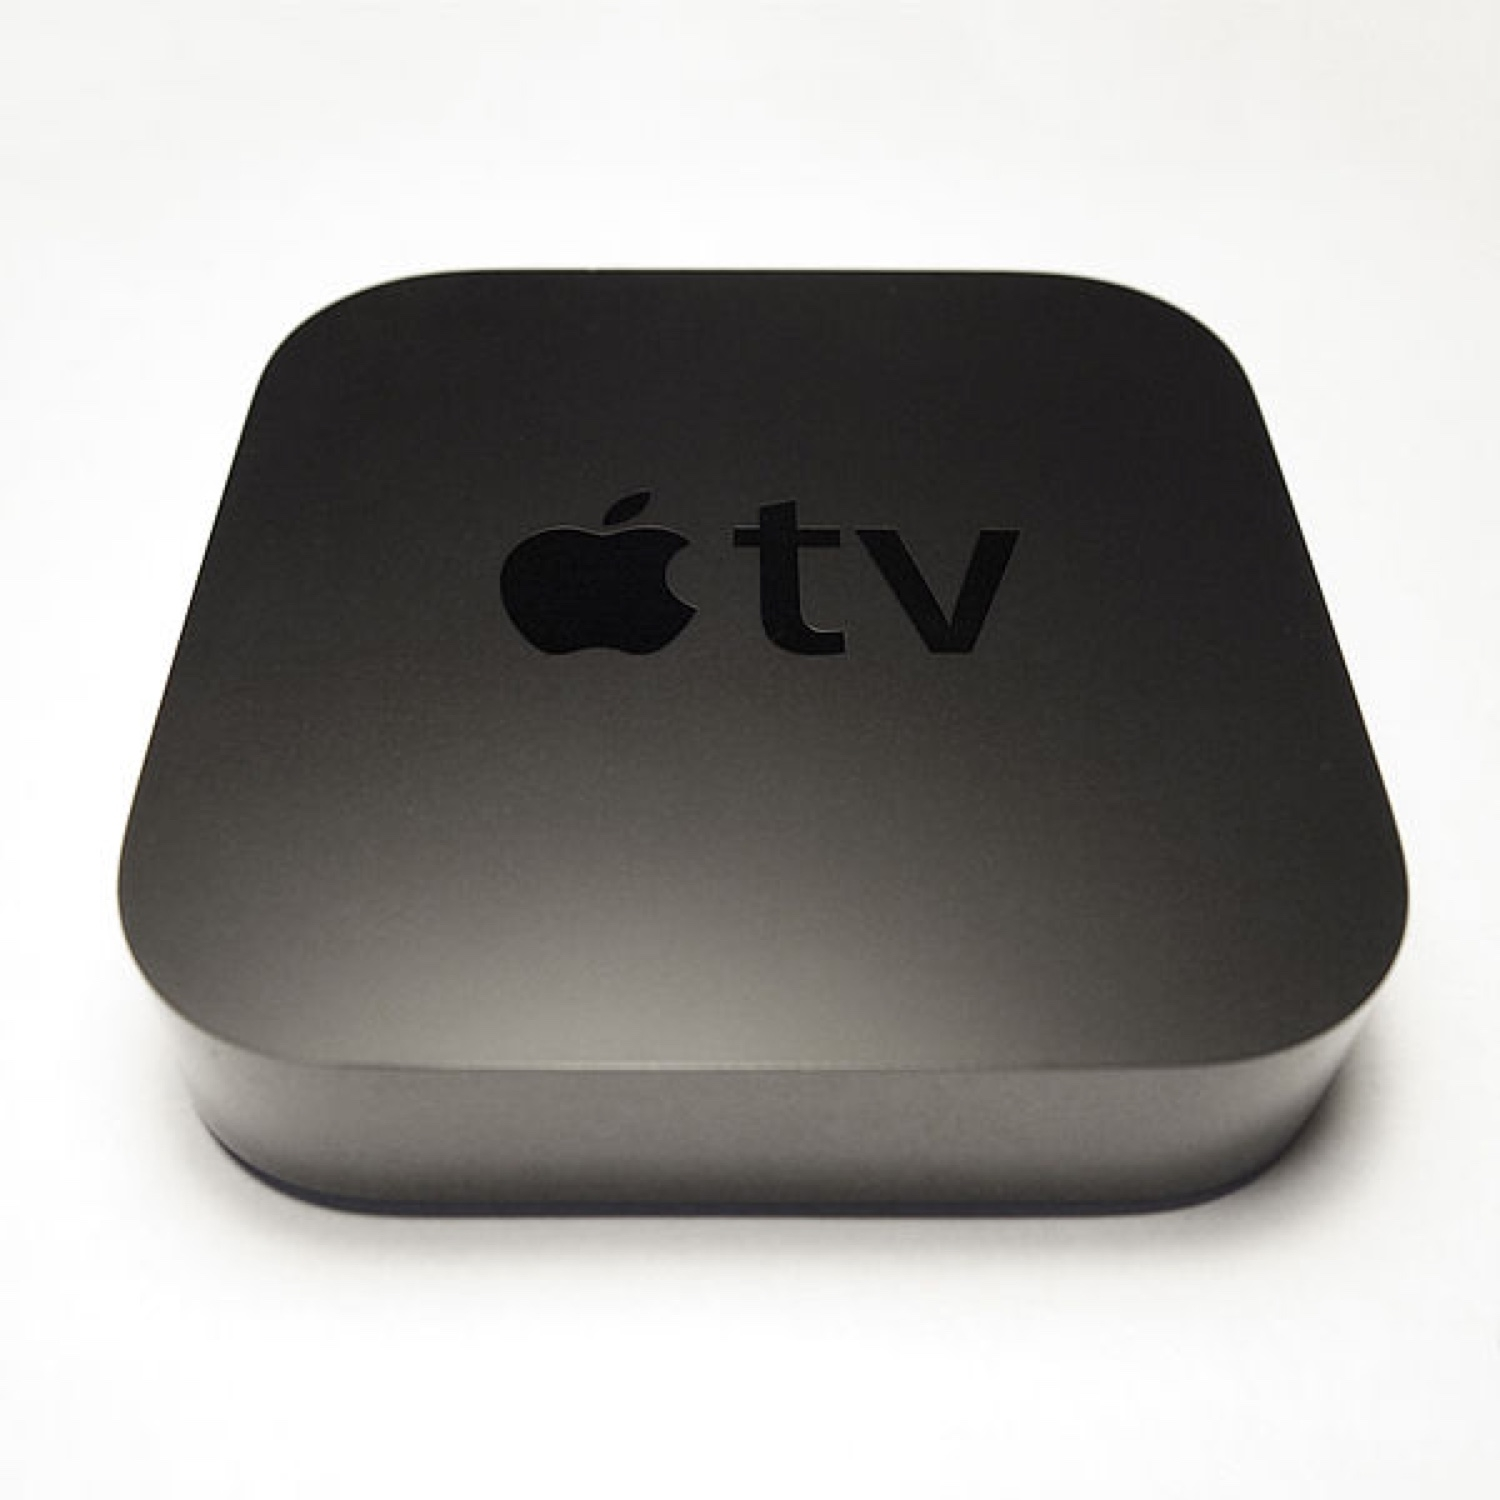 Is The Apple TV Making A Comeback?